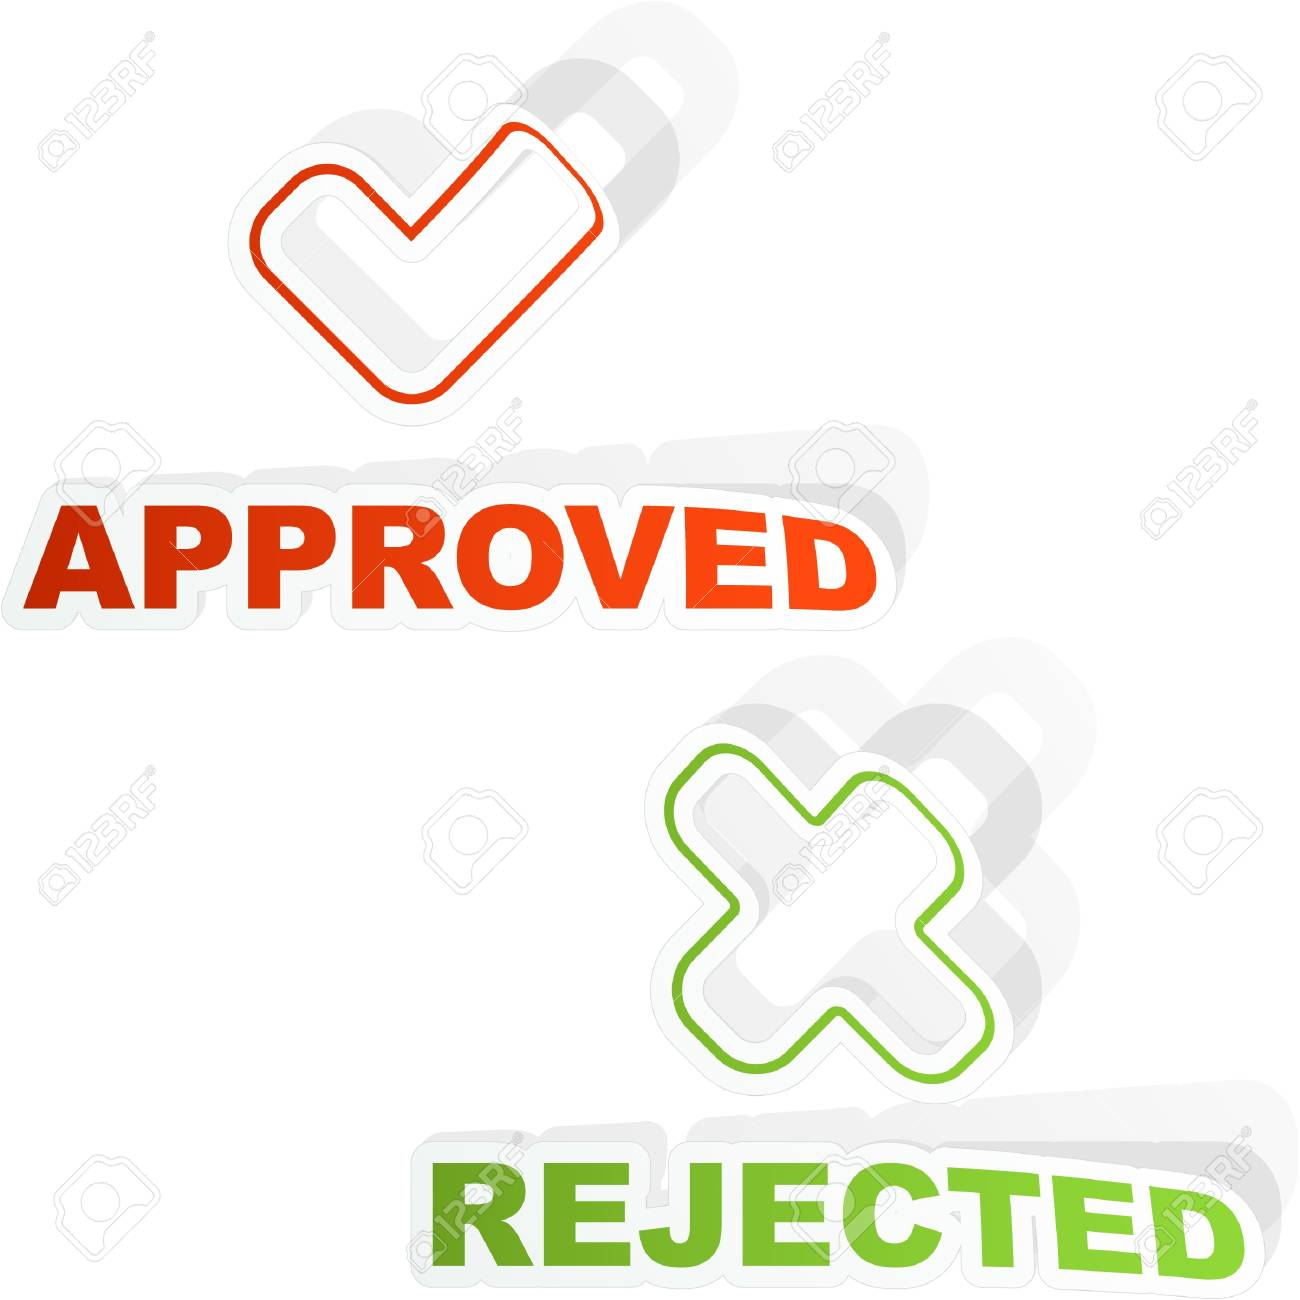 Approved and rejected sticker set. Stock Vector - 8890941